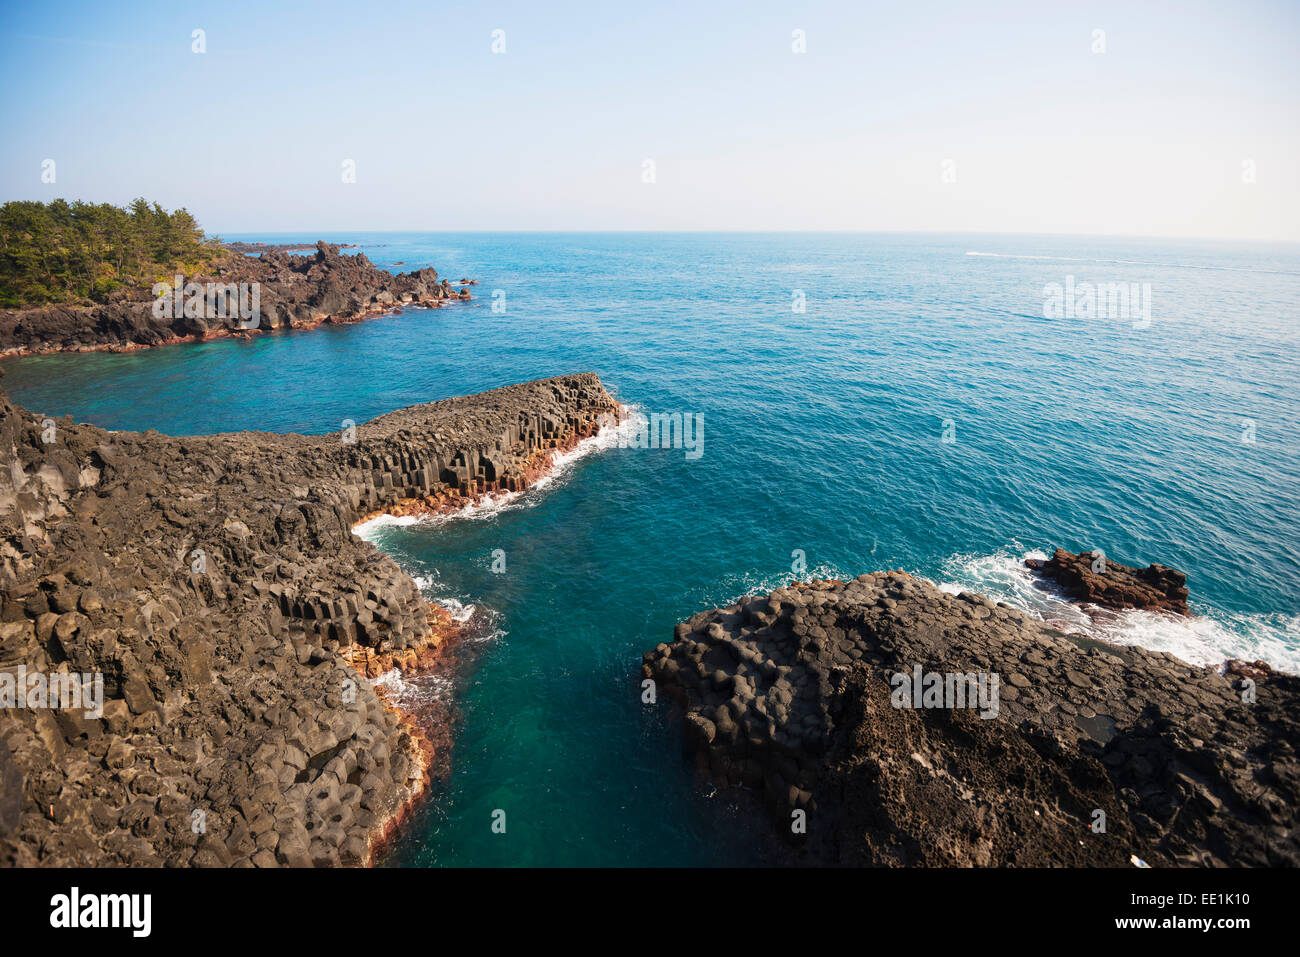 Jungman Daepo columnar jointed lava formation, Seogwipo, Jeju Island, UNESCO World Heritage Site, South Korea, Asia Stock Photo